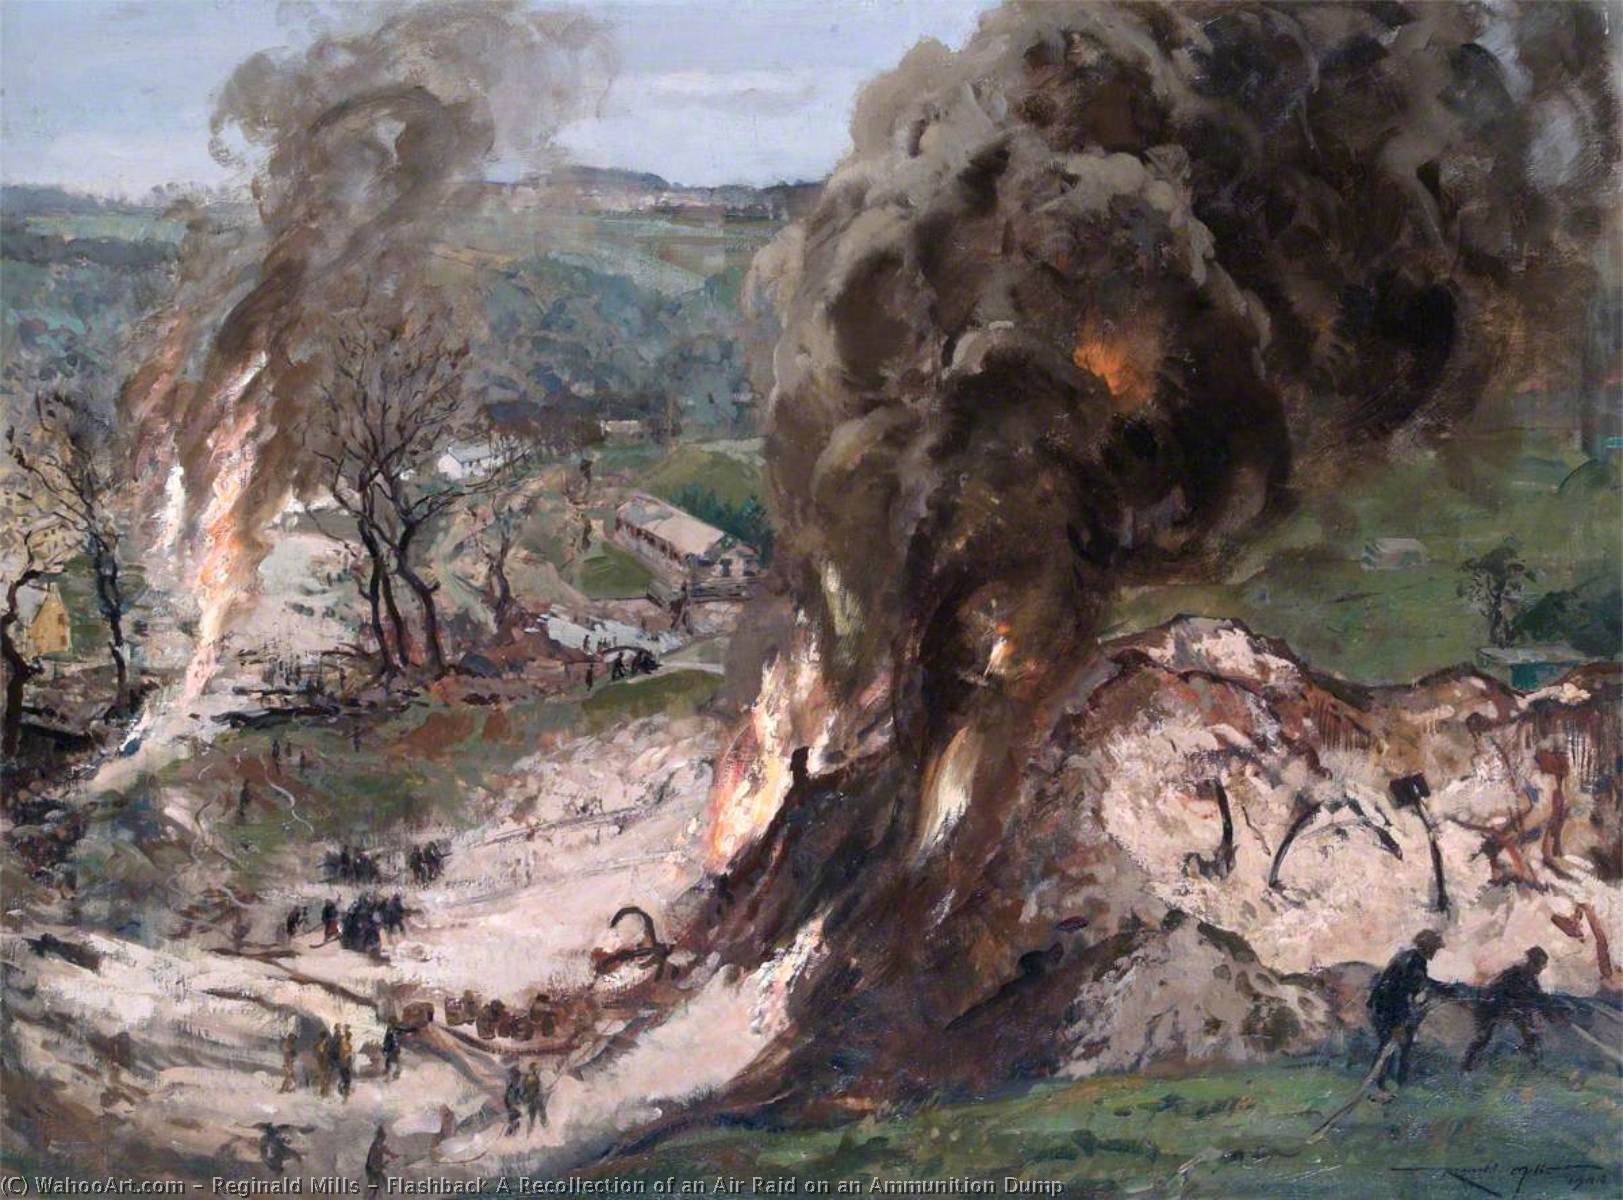 Flashback A Recollection of an Air Raid on an Ammunition Dump, Oil On Canvas by Reginald Mills